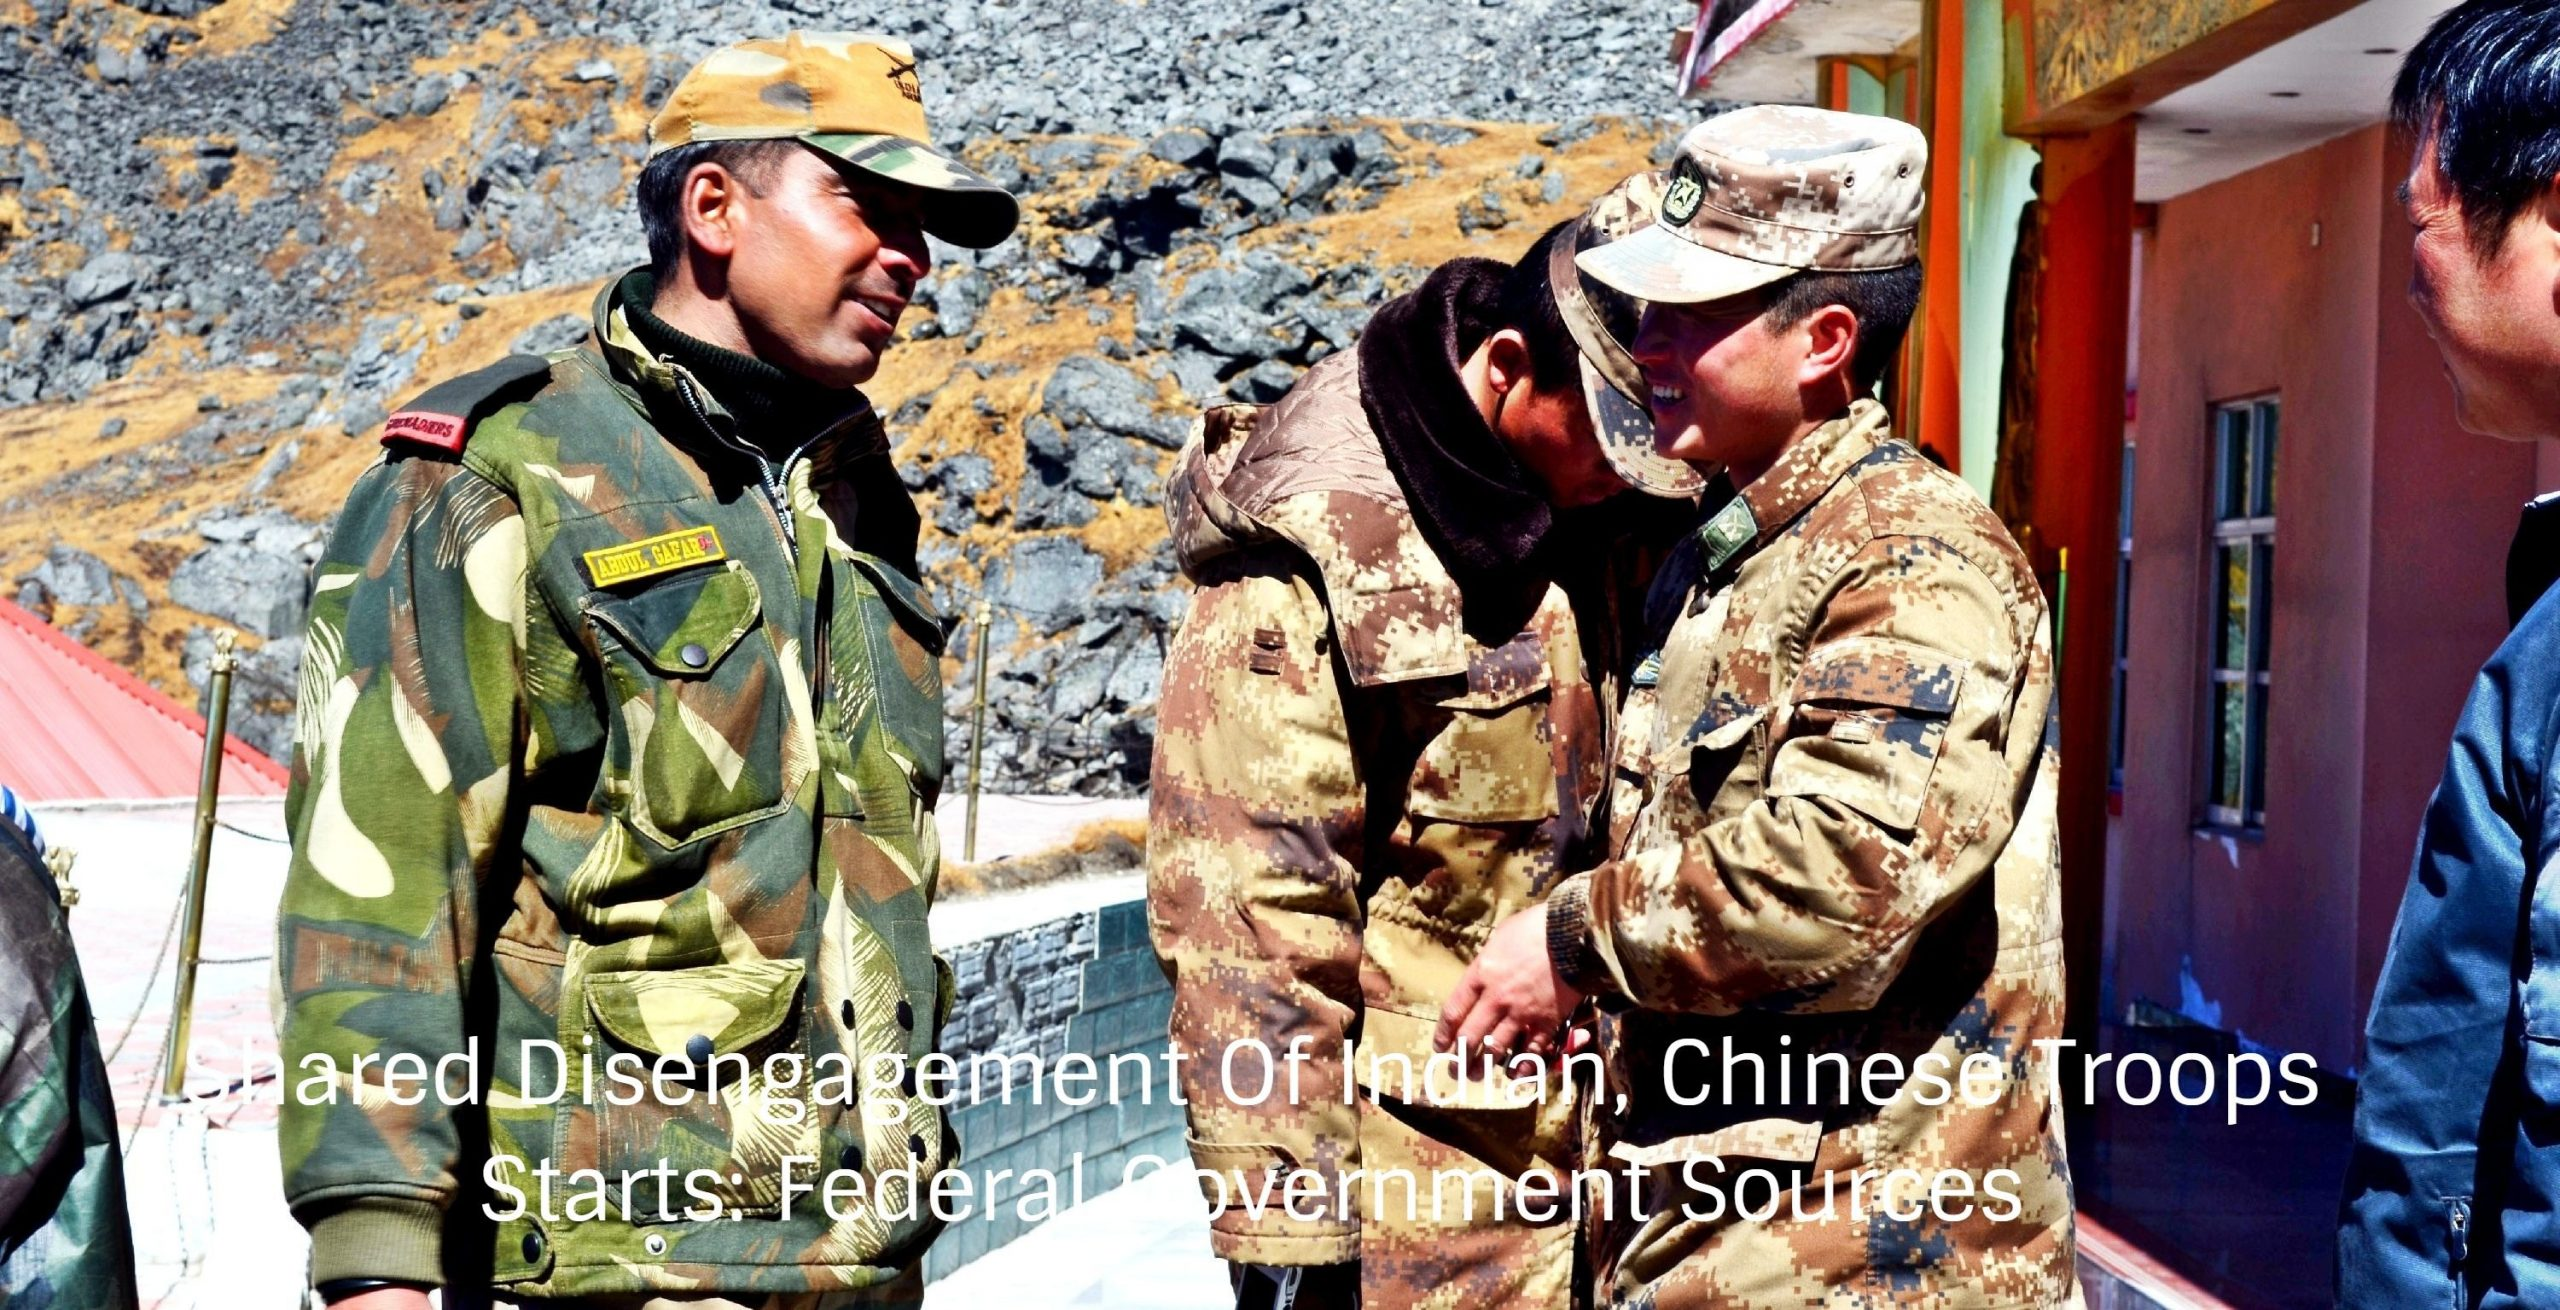 Shared Disengagement Of Indian, Chinese Troops Starts: Federal Government Sources